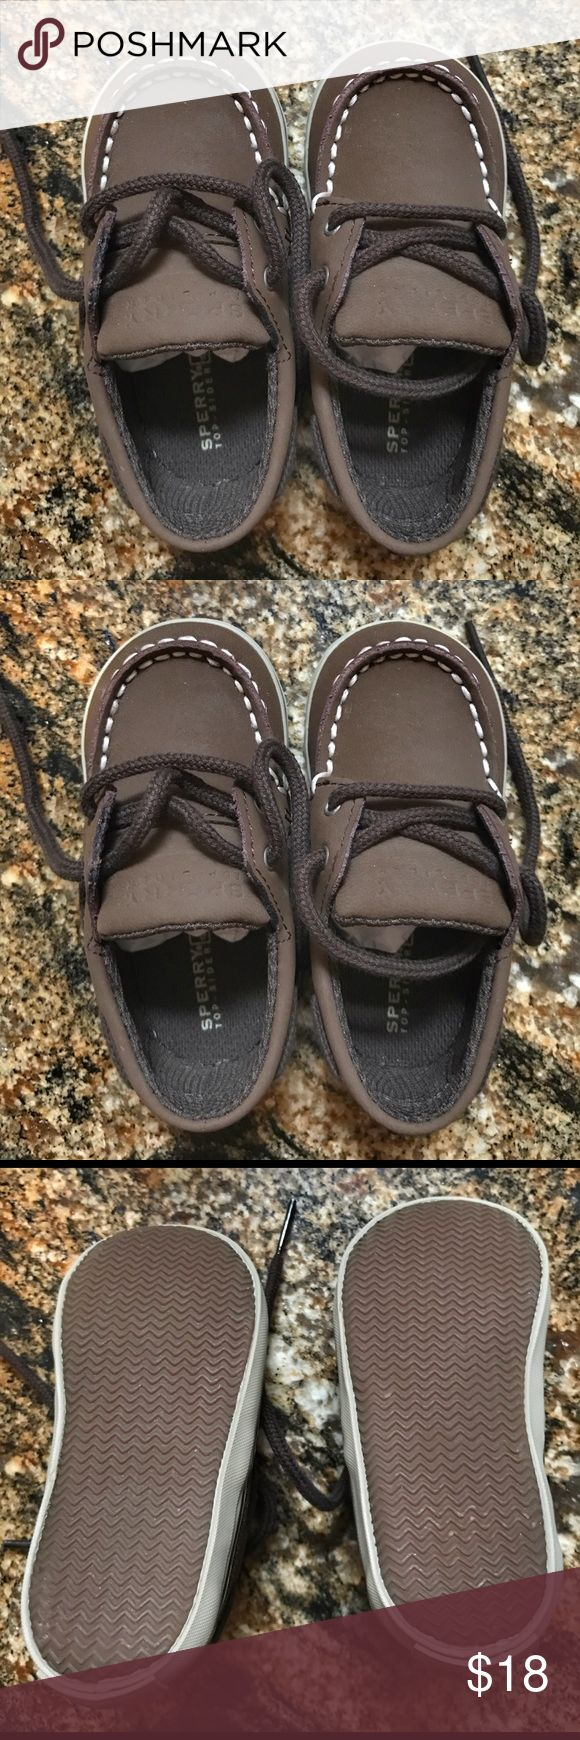 Sperry Boat Shoes Never worn, new in box toddler Sperry boat shoes in Cigar Brown, size 4. Sperry Top-Sider Shoes Baby & Walker